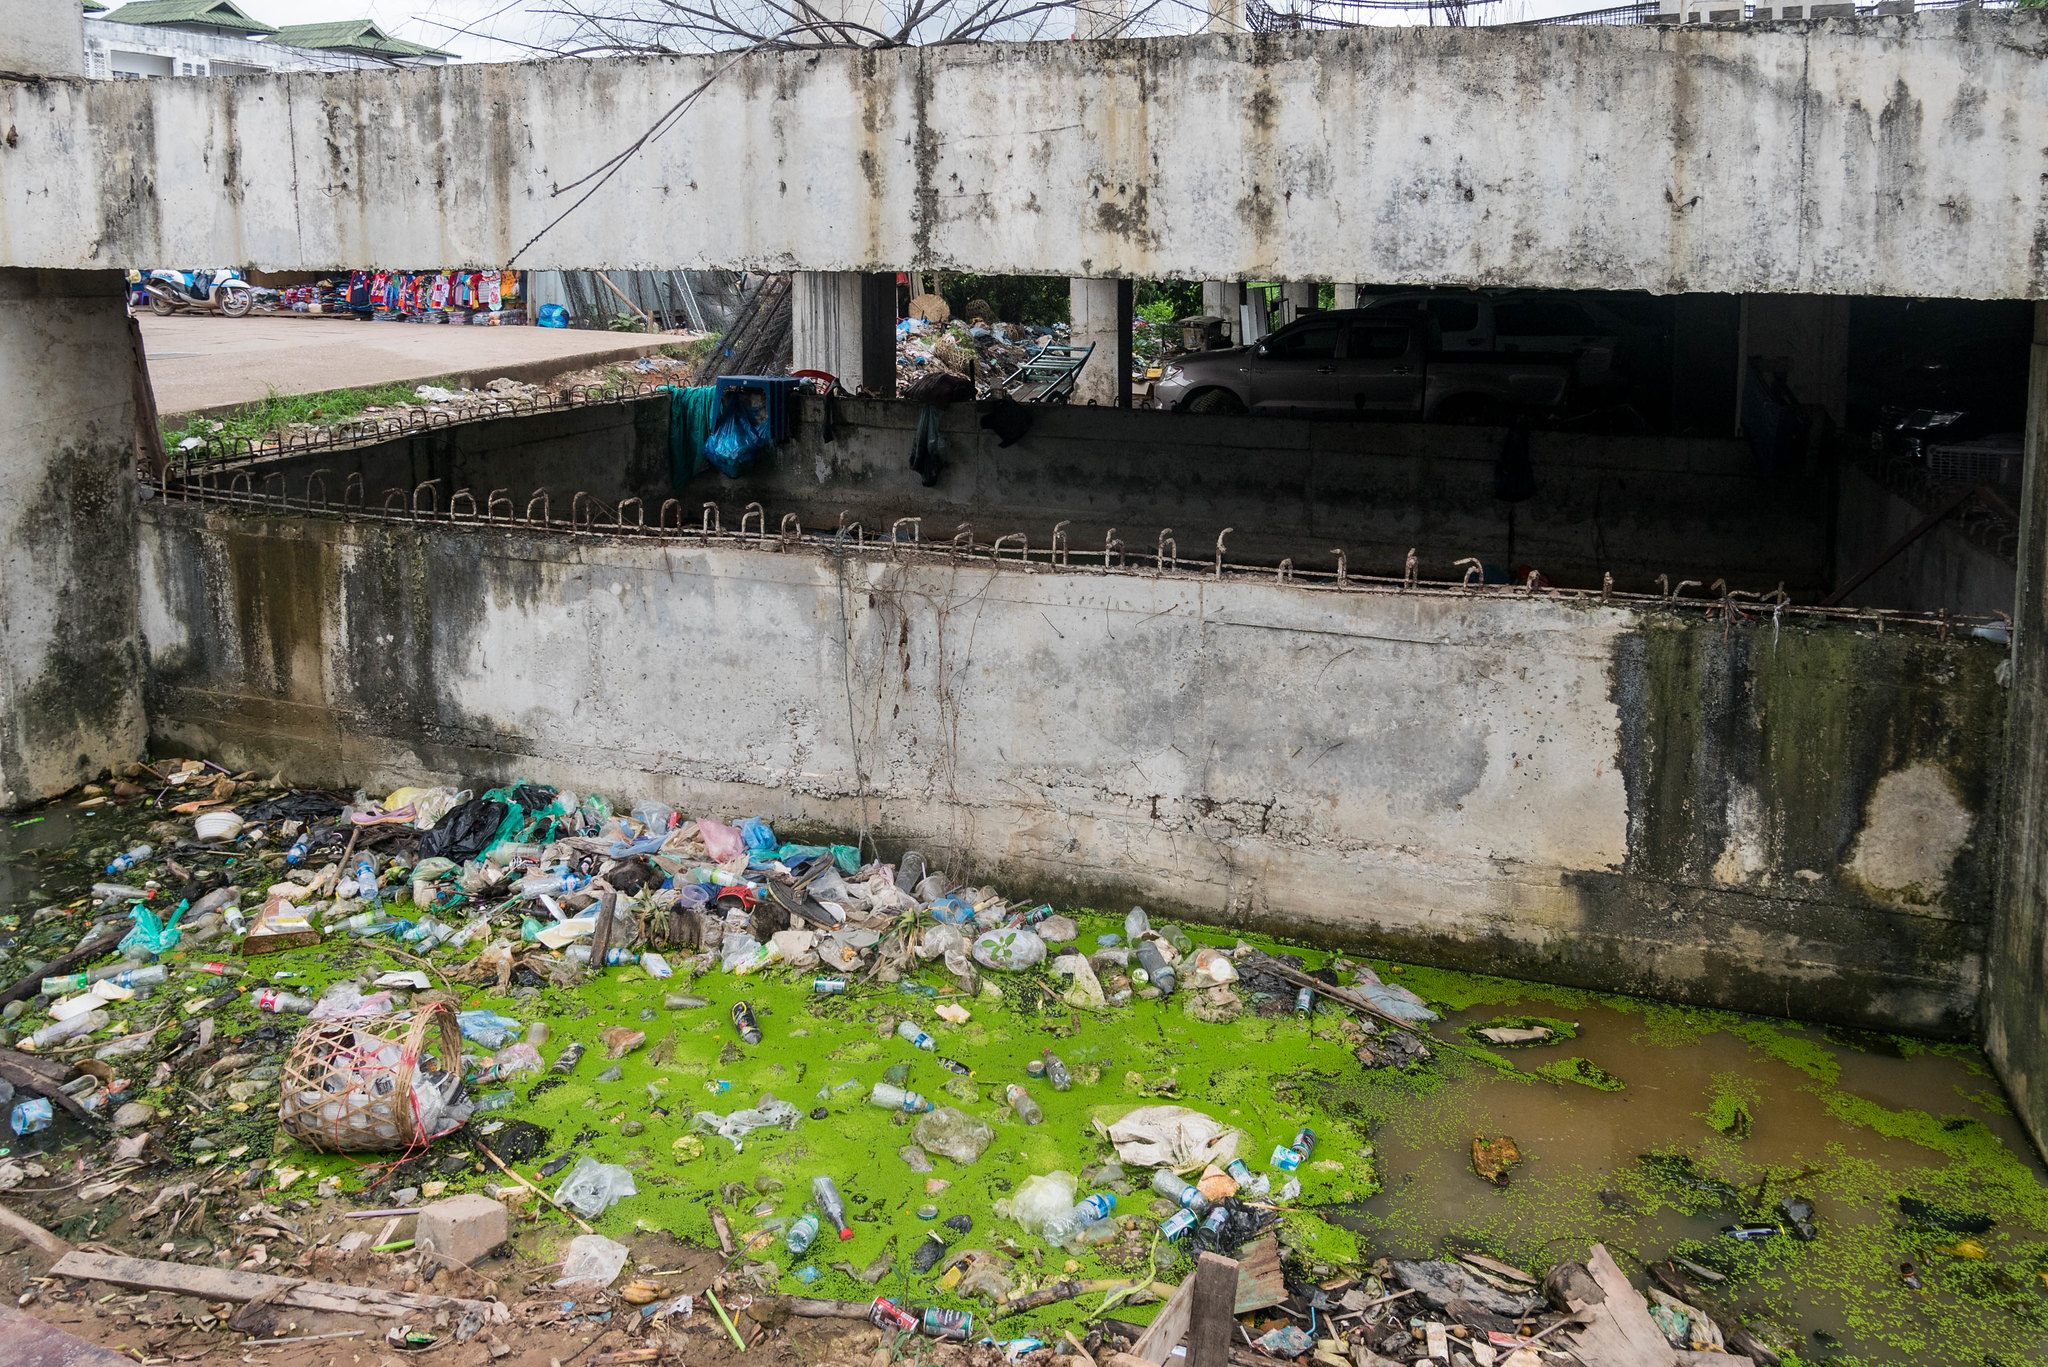 Ecology is a desperate cause in Asia